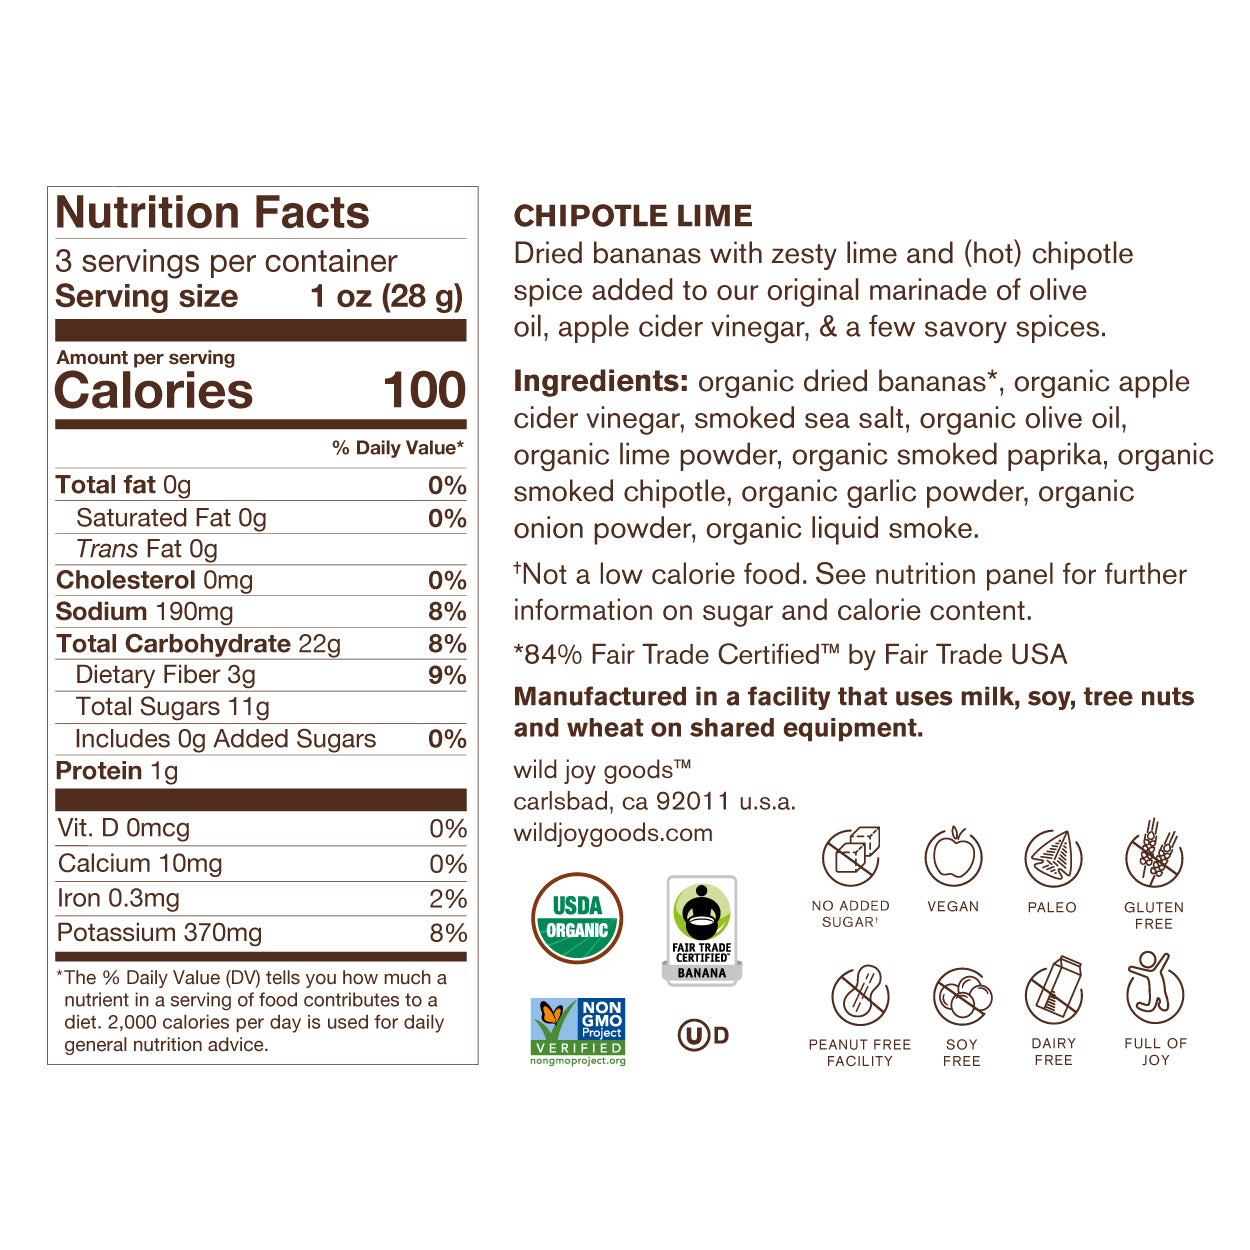 Chipotle Lime Nutrition Facts